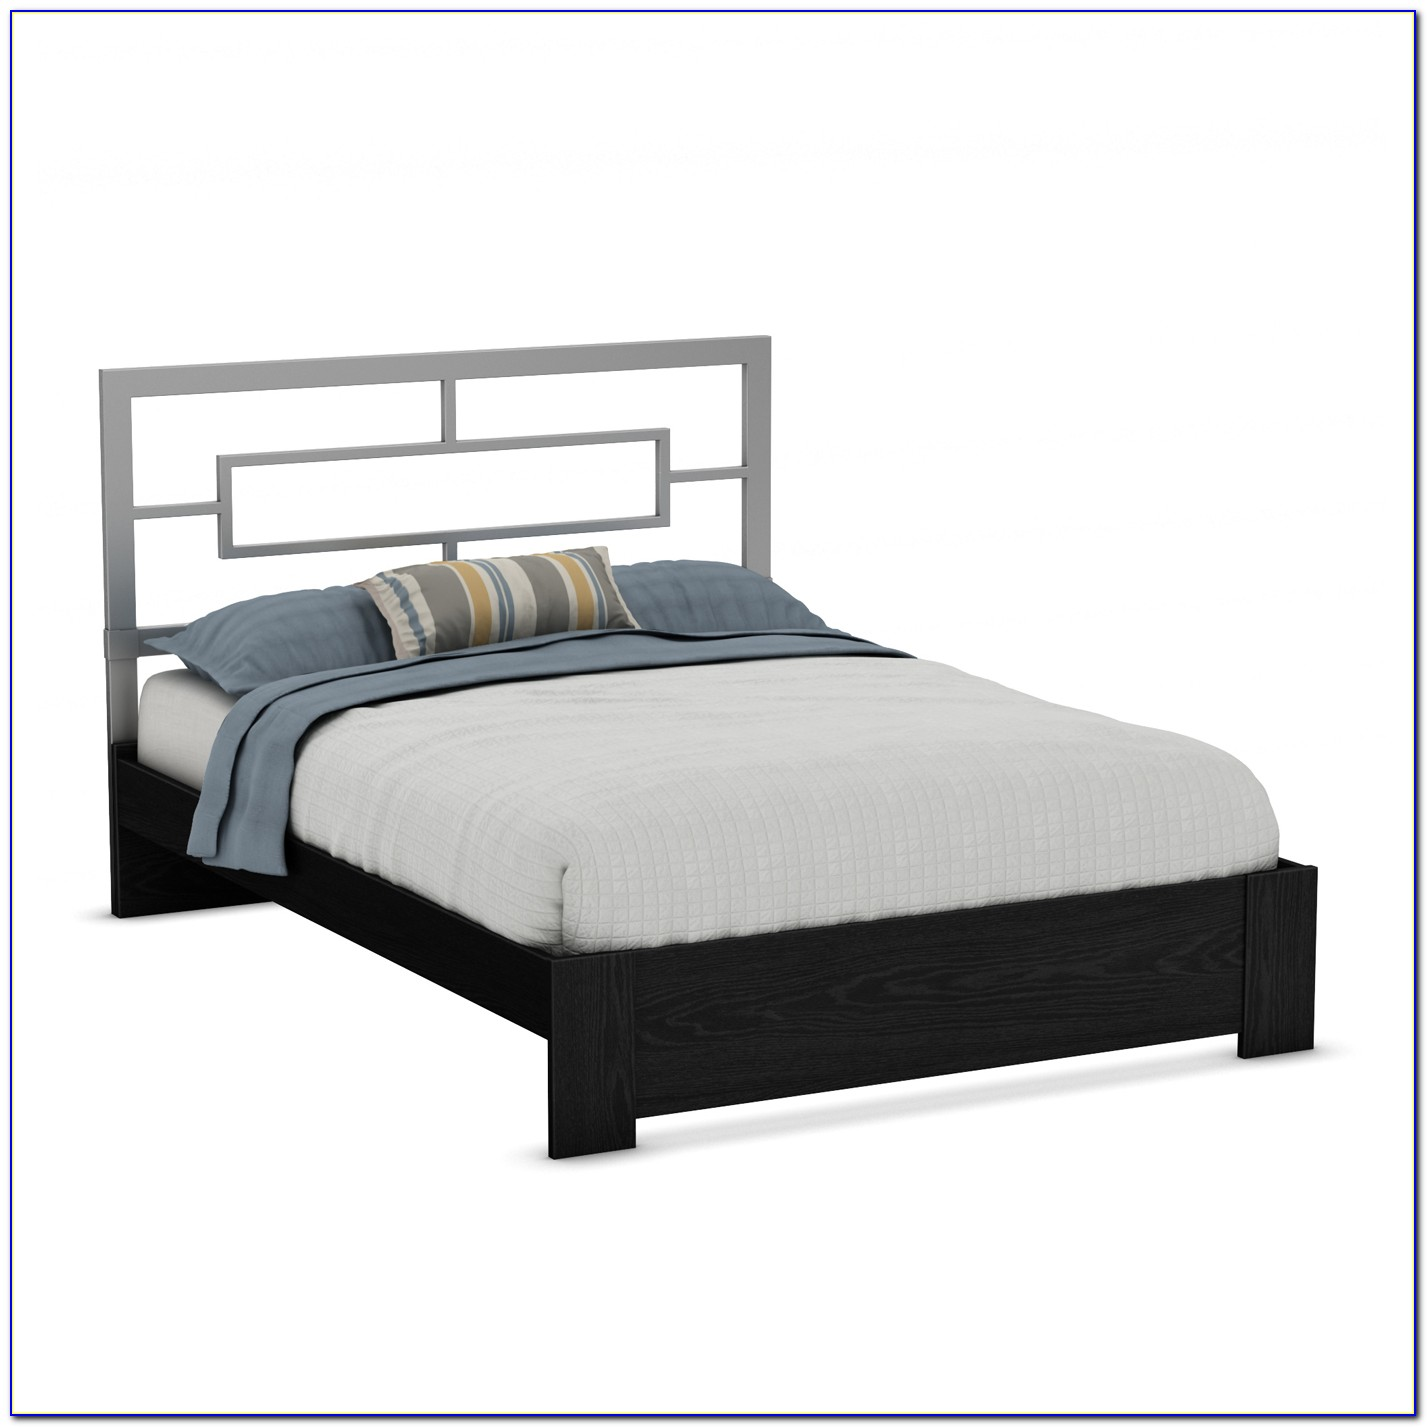 Headboards For Full Size Platform Beds